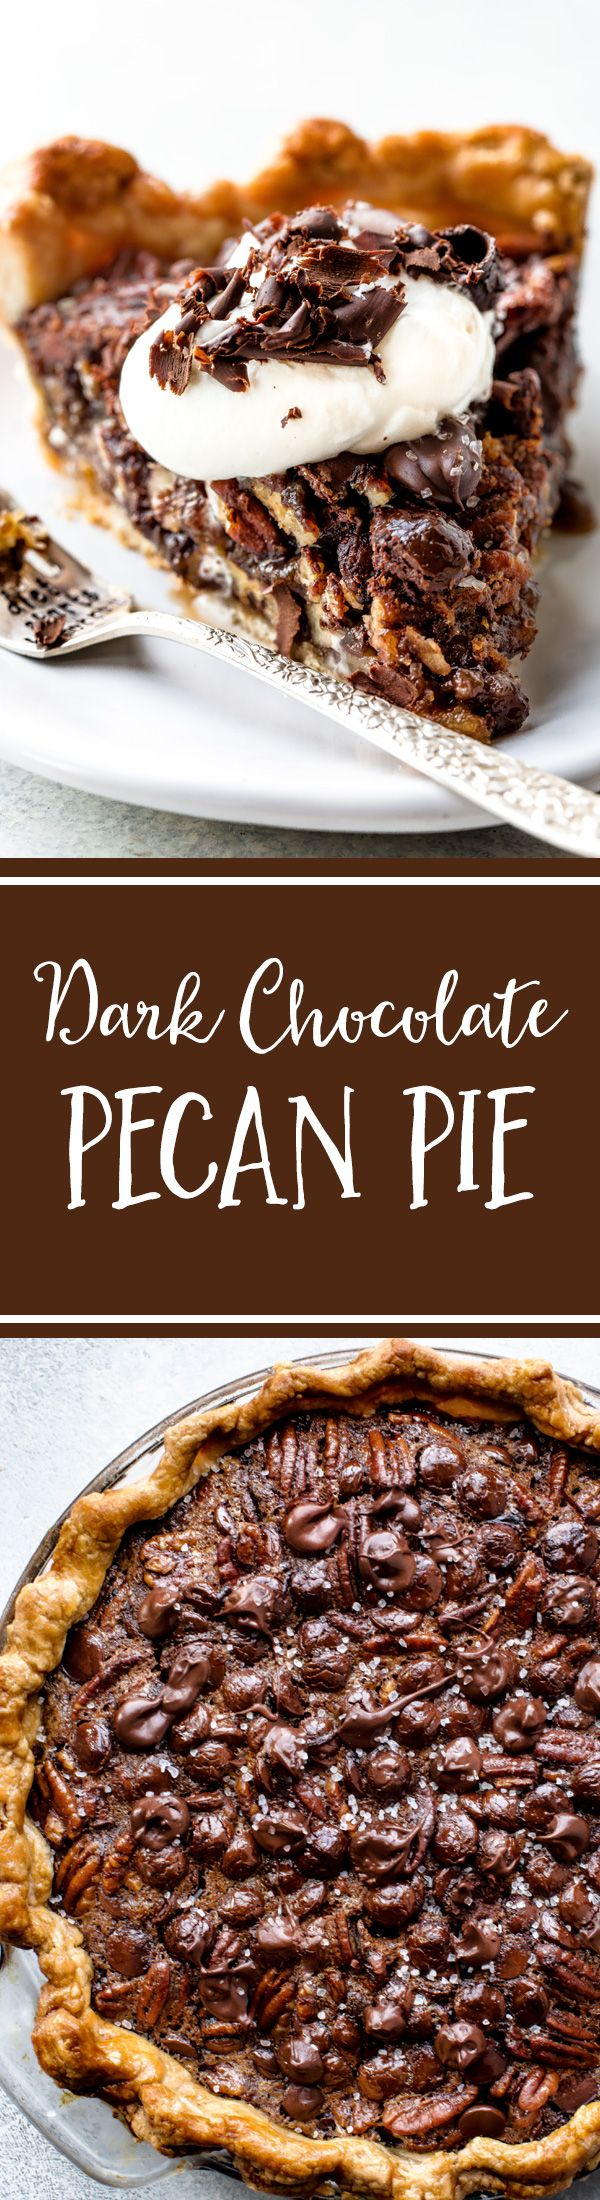 Deep decadent and delicious dark chocolate pecan pie with sea salt! Recipe on sallysbakingaddiction.com